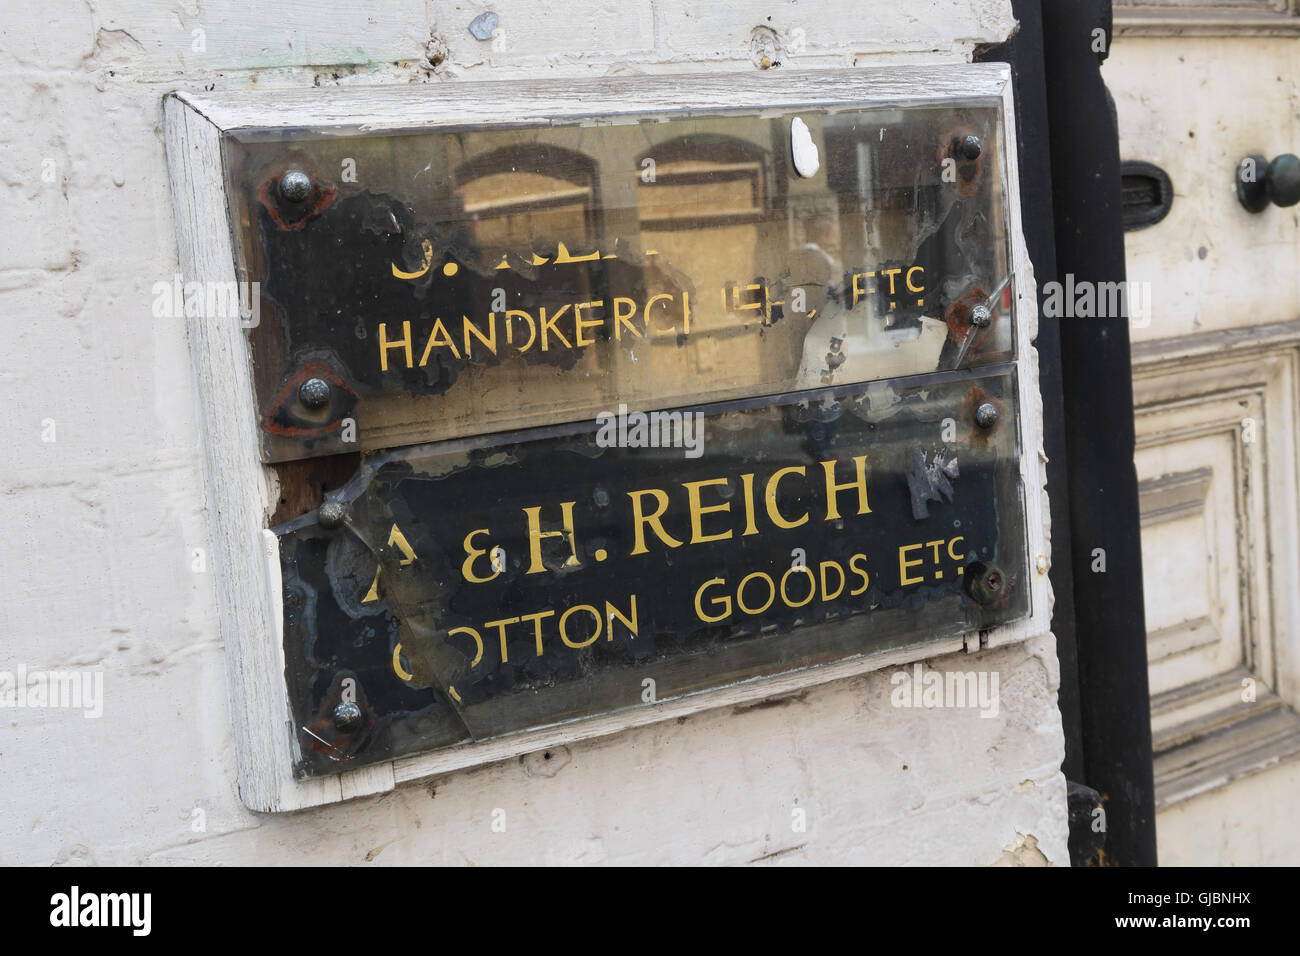 A & H Reich, Cotton Goods etc, Handkerchiefs etc, brass company plaque, Manchester Cotton Goods, City Centre, - Stock Image